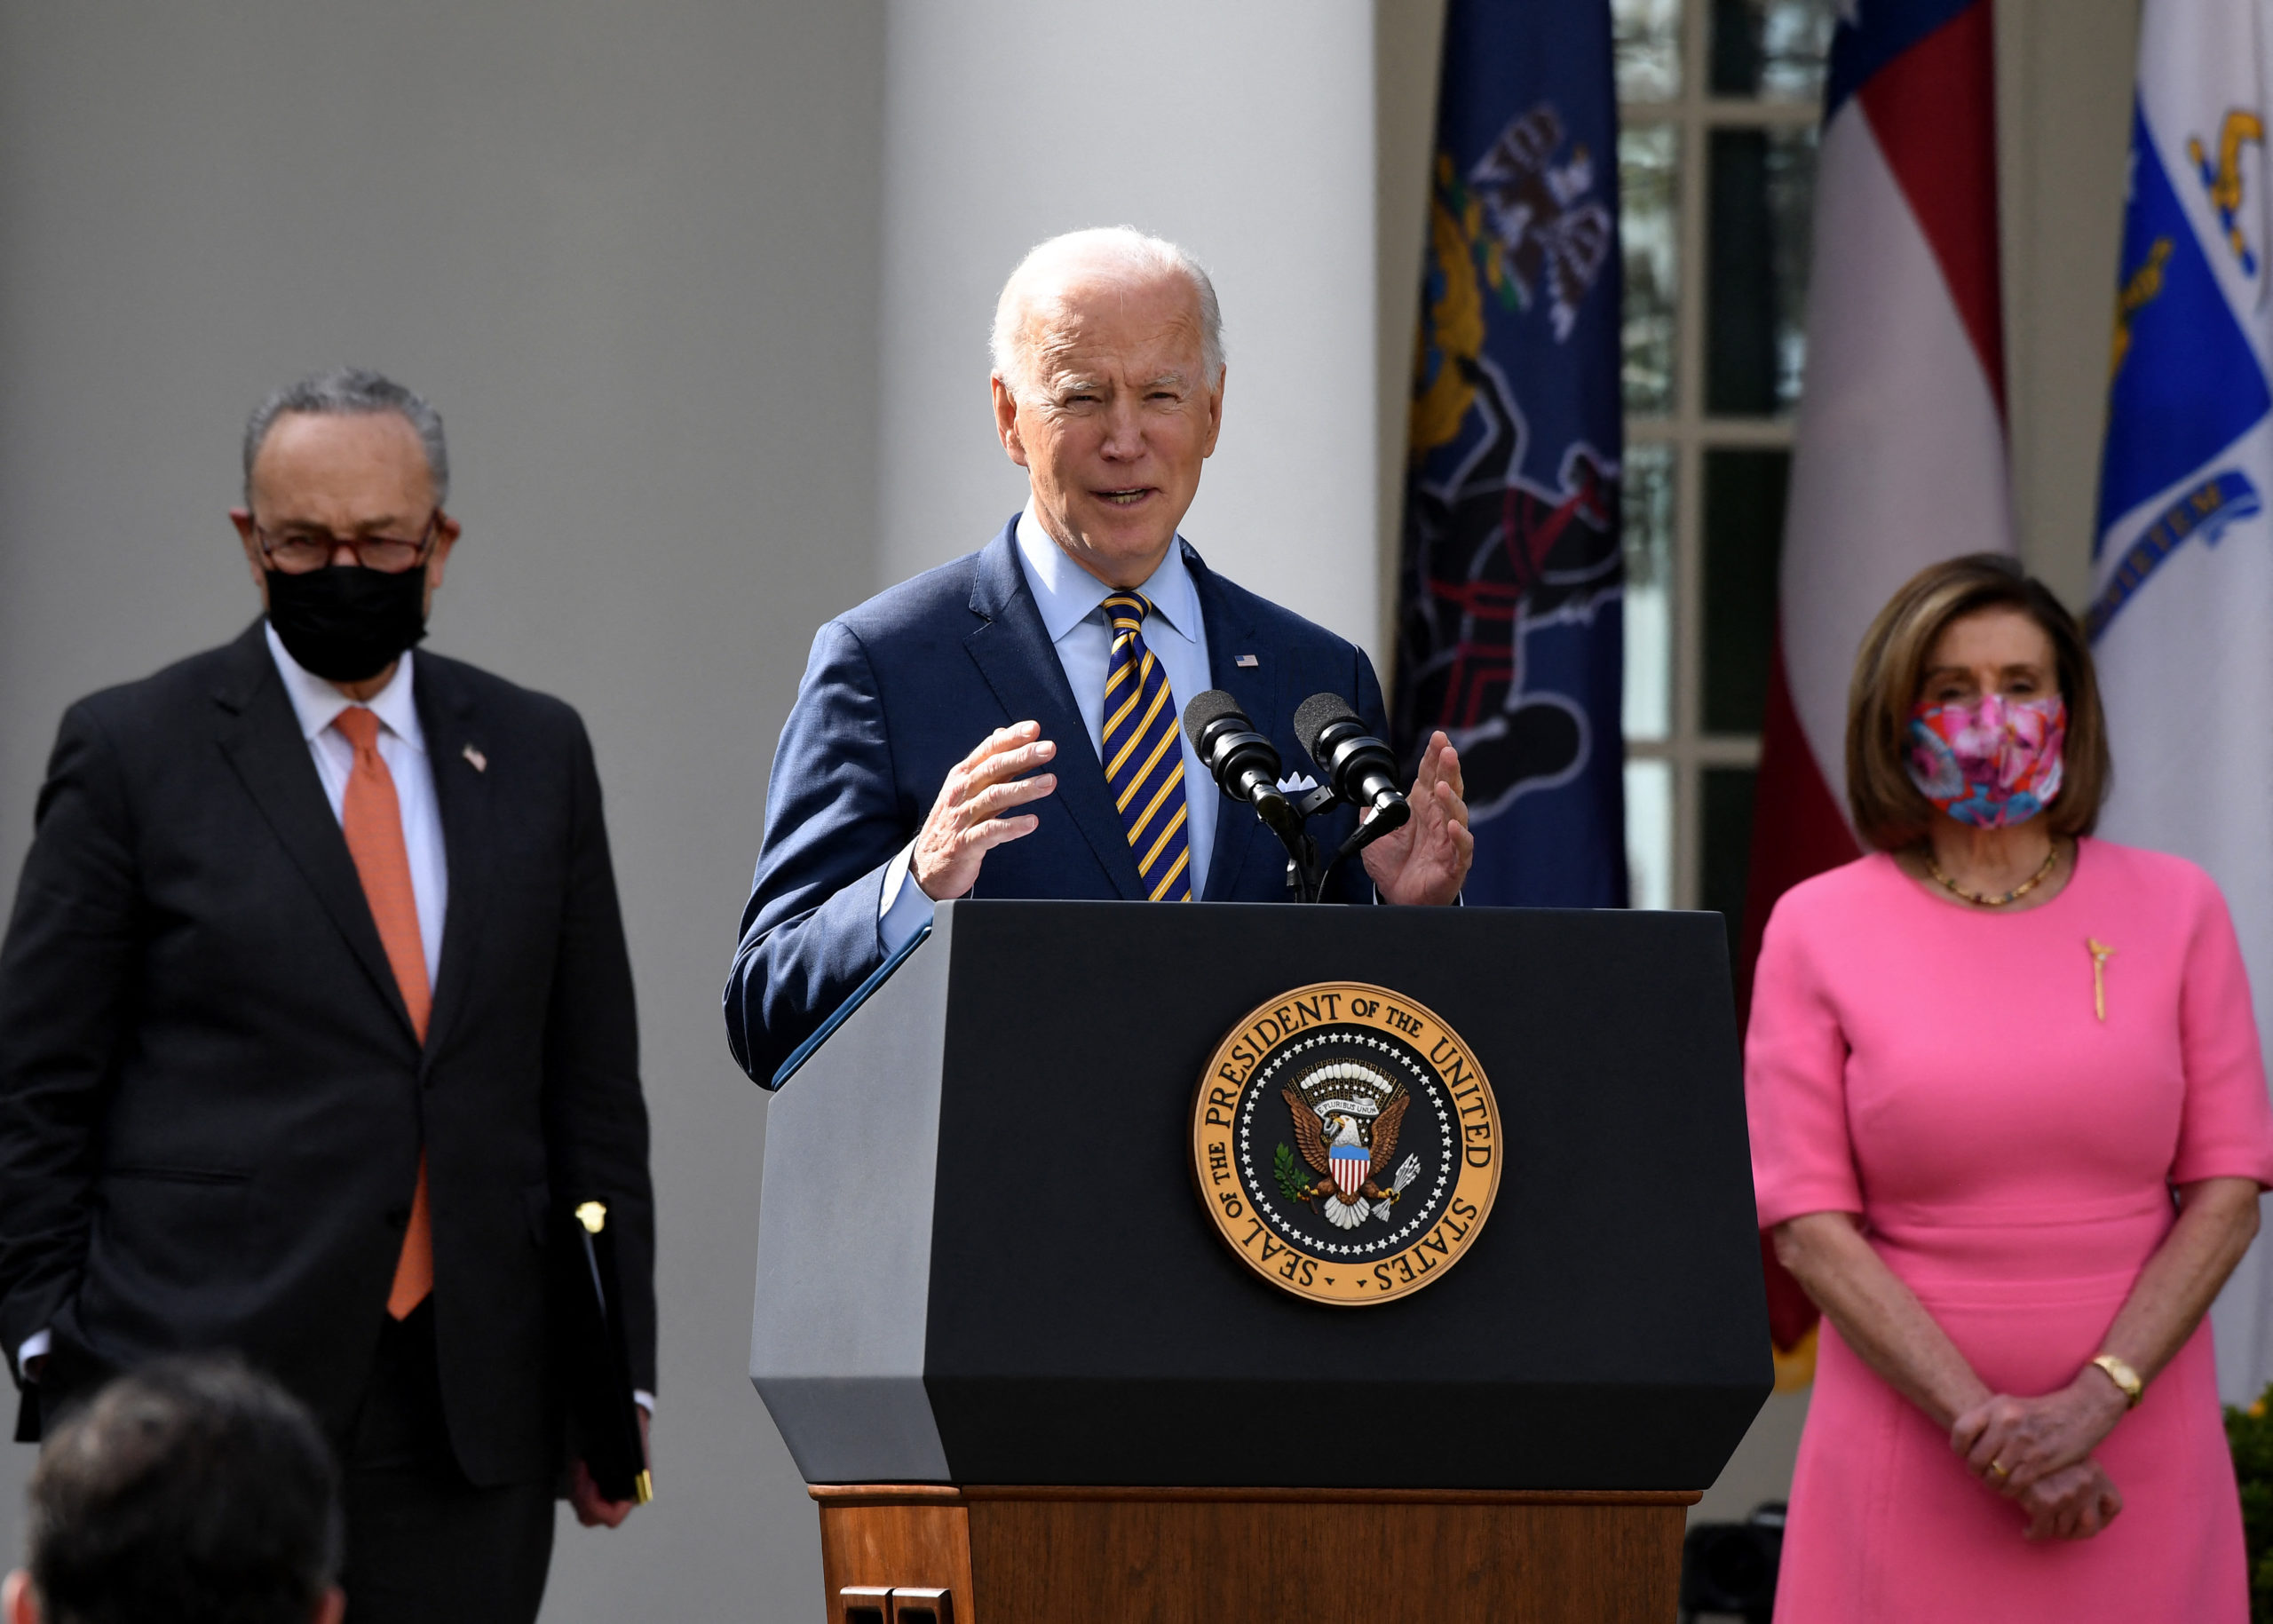 US President Joe Biden, with (L-R) Senate Majority Leader Chuck Schumer, Democrat of New York, and House Speaker Nancy Pelosi, Democrat of California, speaks about the American Rescue Plan in the Rose Garden of the White House in Washington, DC, on March 12, 2021. (Photo by OLIVIER DOULIERY / AFP) (Photo by OLIVIER DOULIERY/AFP via Getty Images)